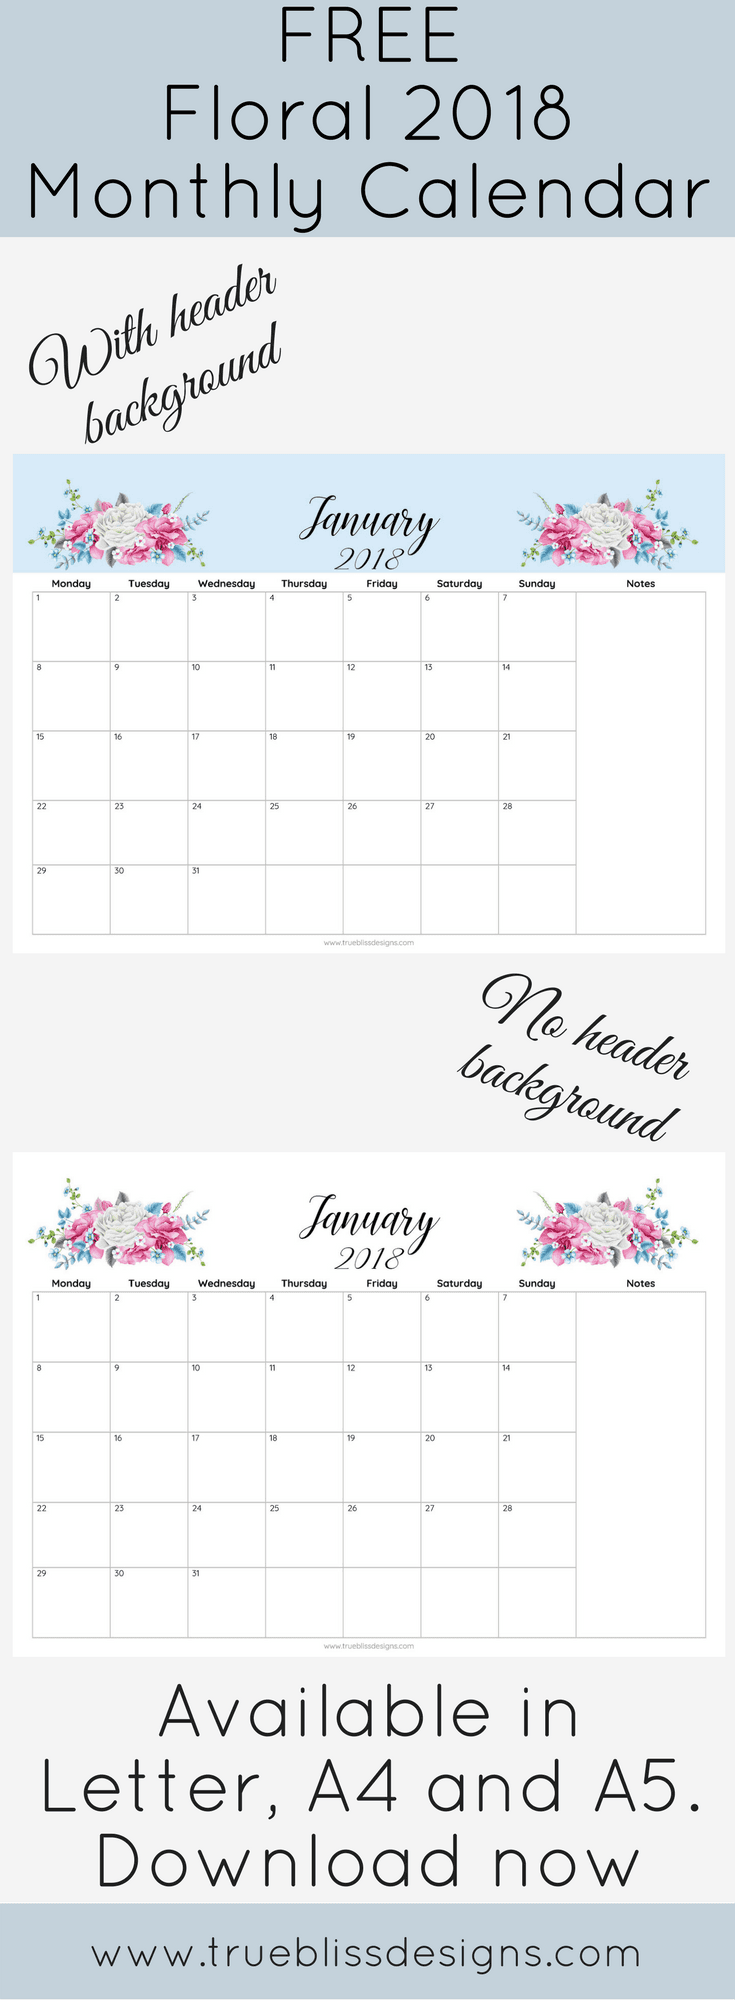 Calendar Header Design : Floral monthly calendar with and without header